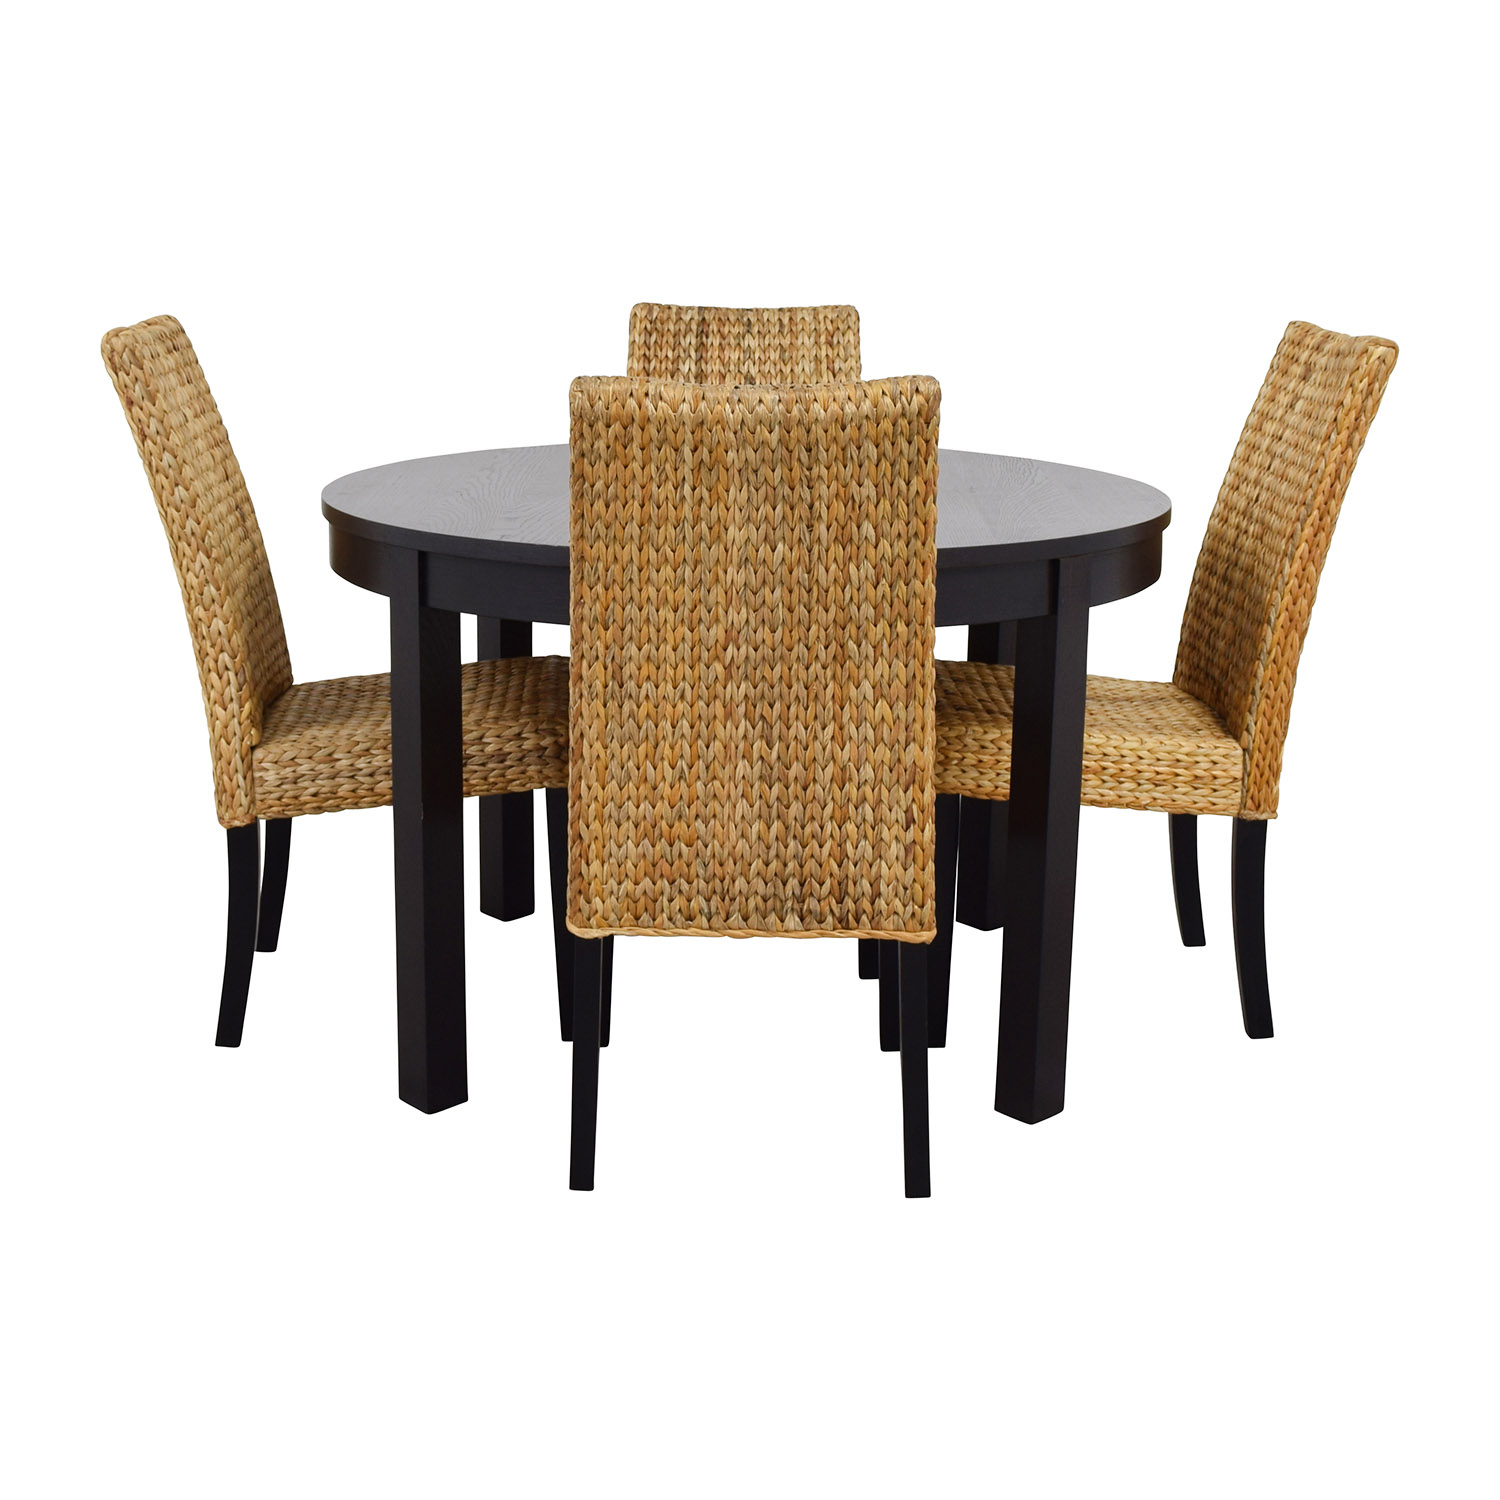 66 off macy 39 s ikea round black dining table set with four chairs tables Round dining table set